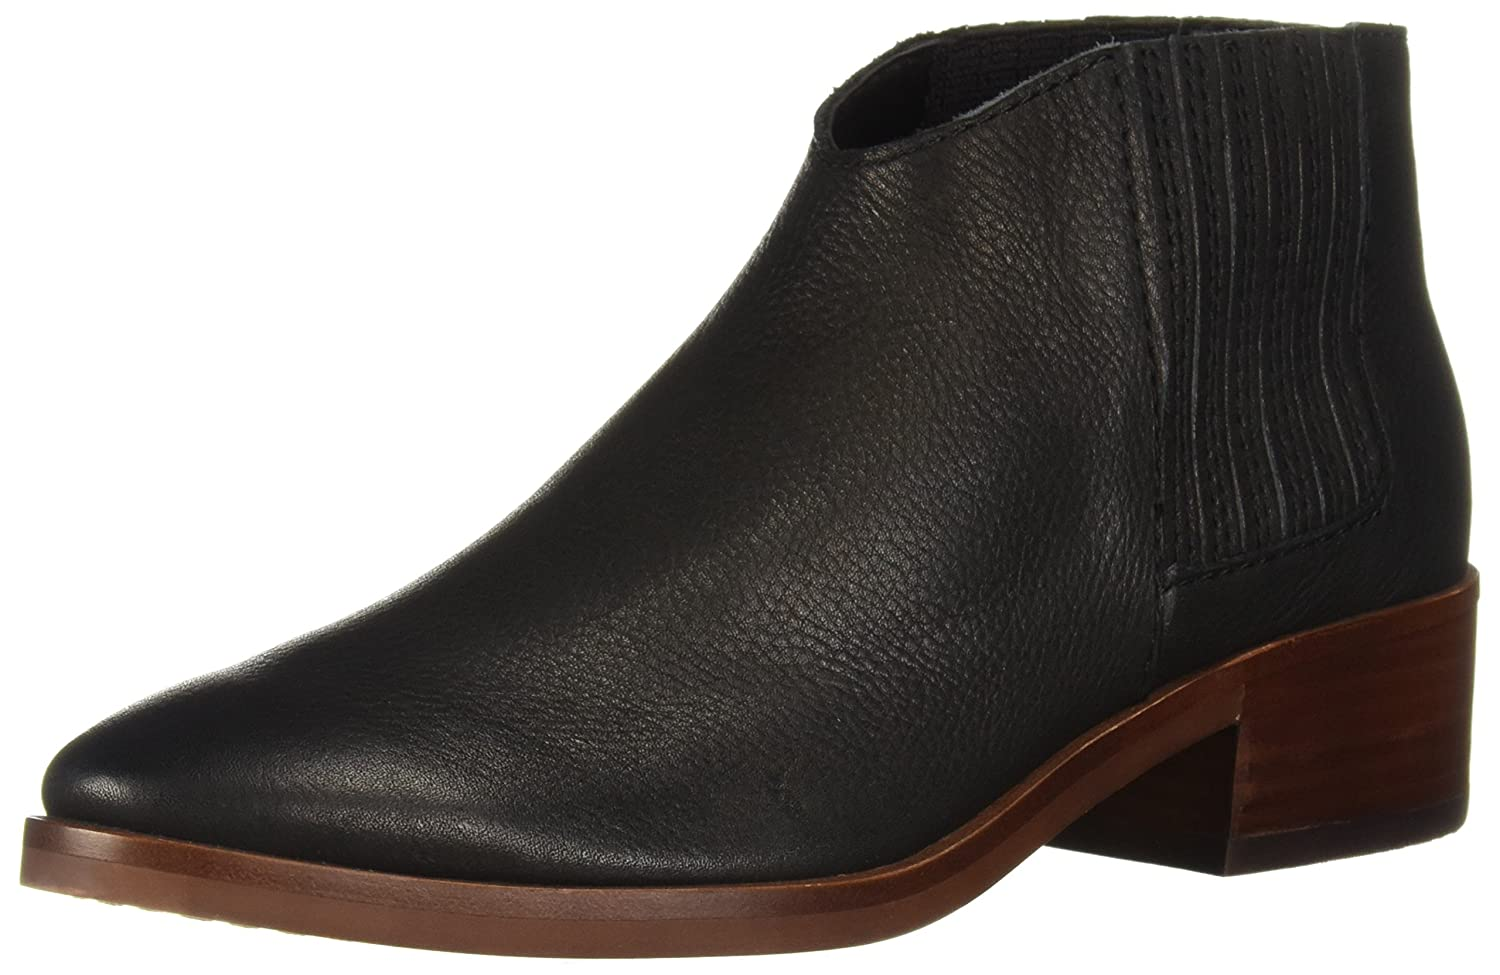 Dolce Vita Women's Towne Ankle Boot B07C9HBYRZ 6 B(M) US|Black Leather